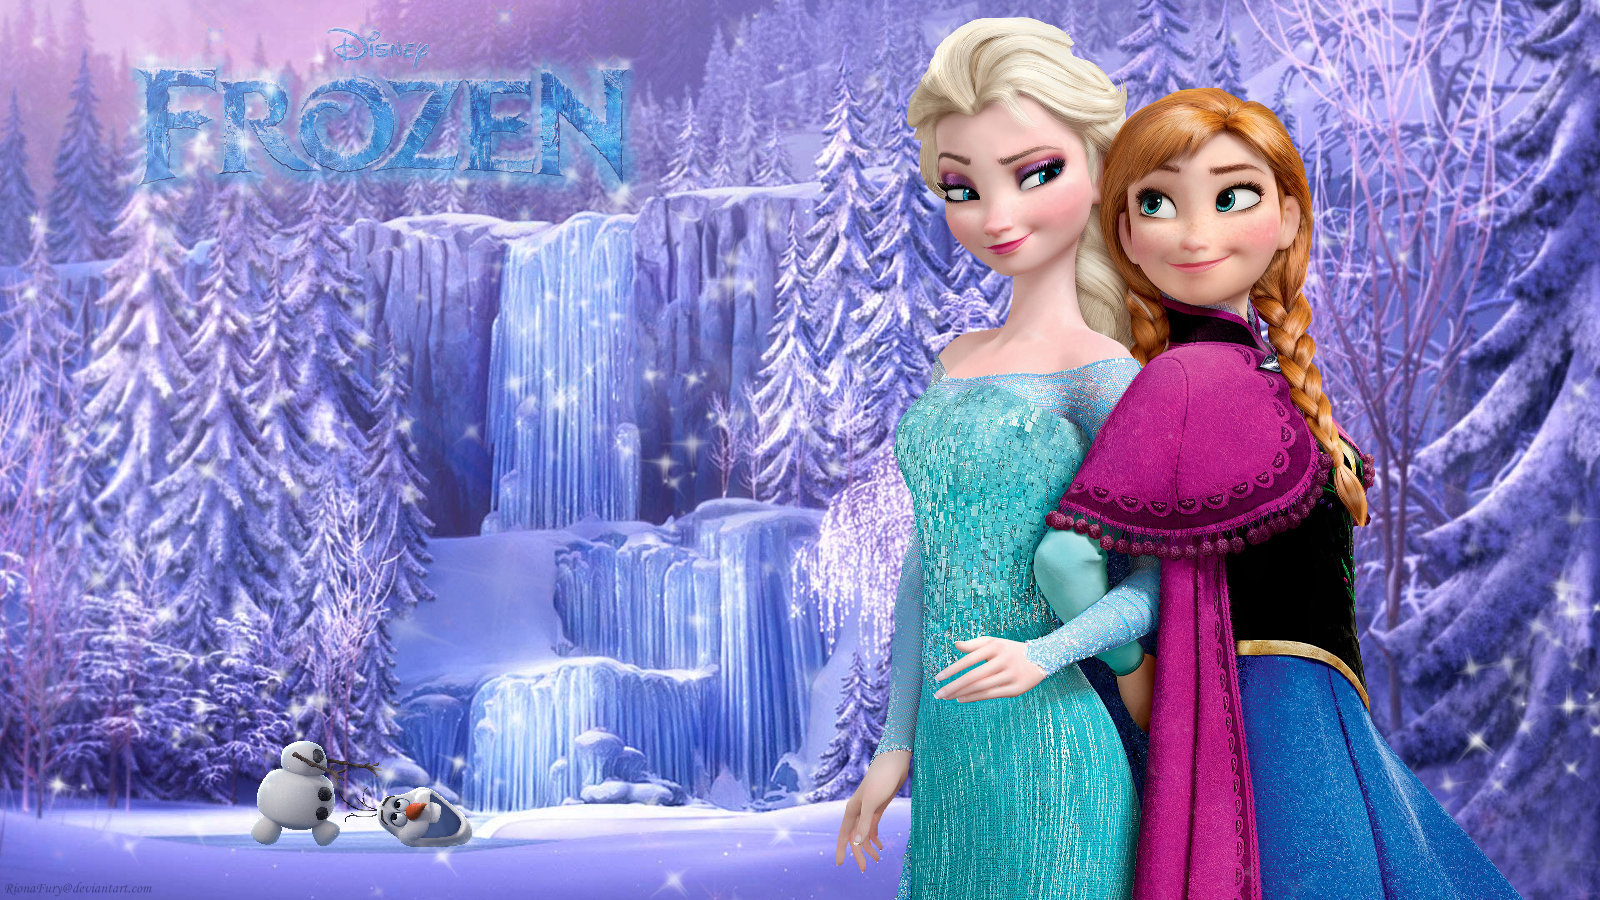 elsa and anna wallpapers,doll,toy,barbie,purple,violet